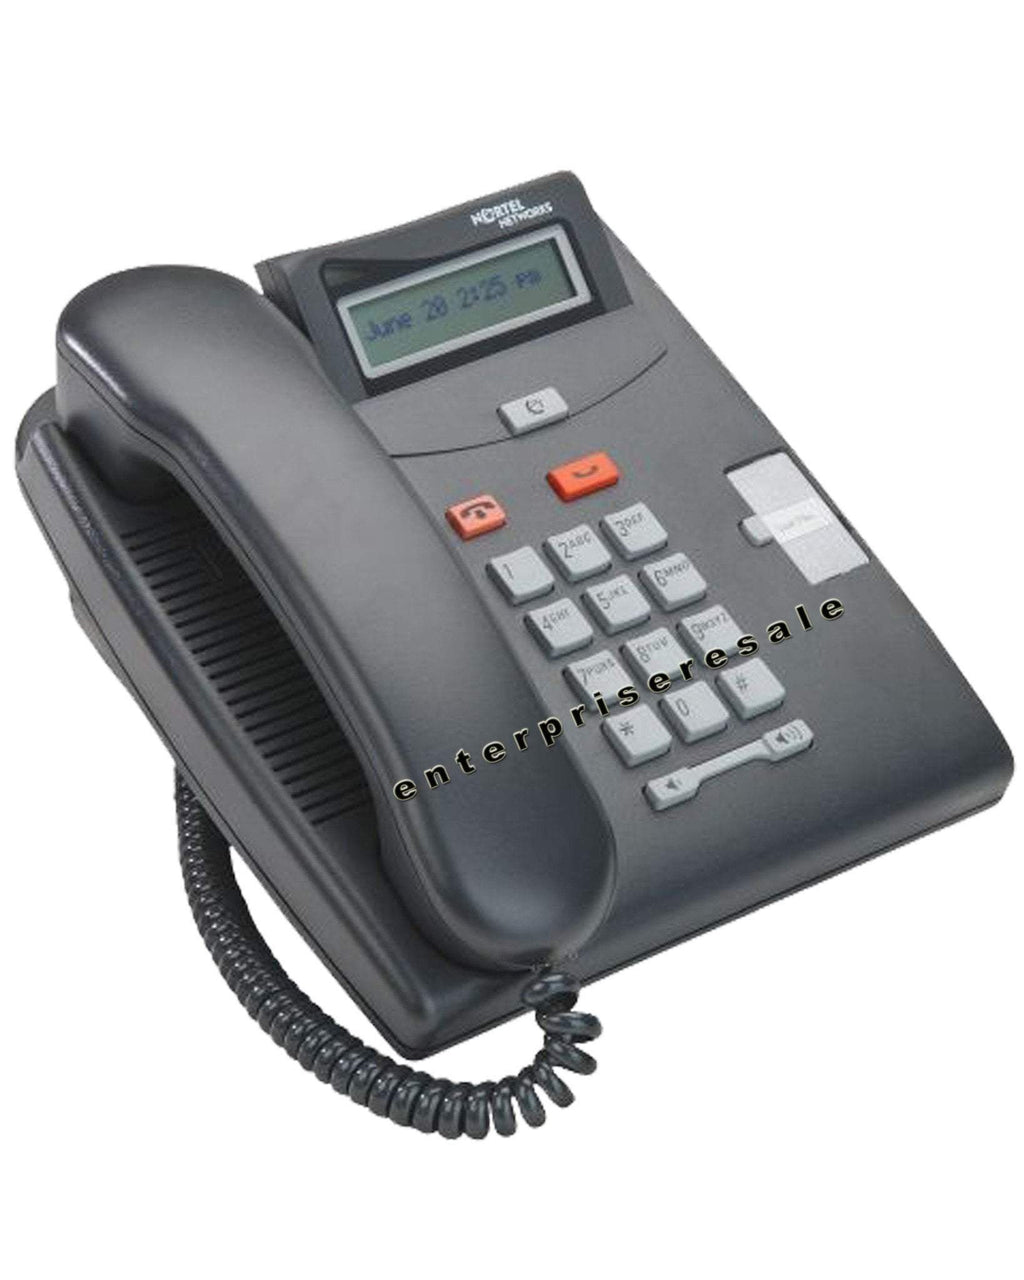 Nortel Phone Nortel T7100 Digital Phone Charcoal (NT8B25) Refurbished